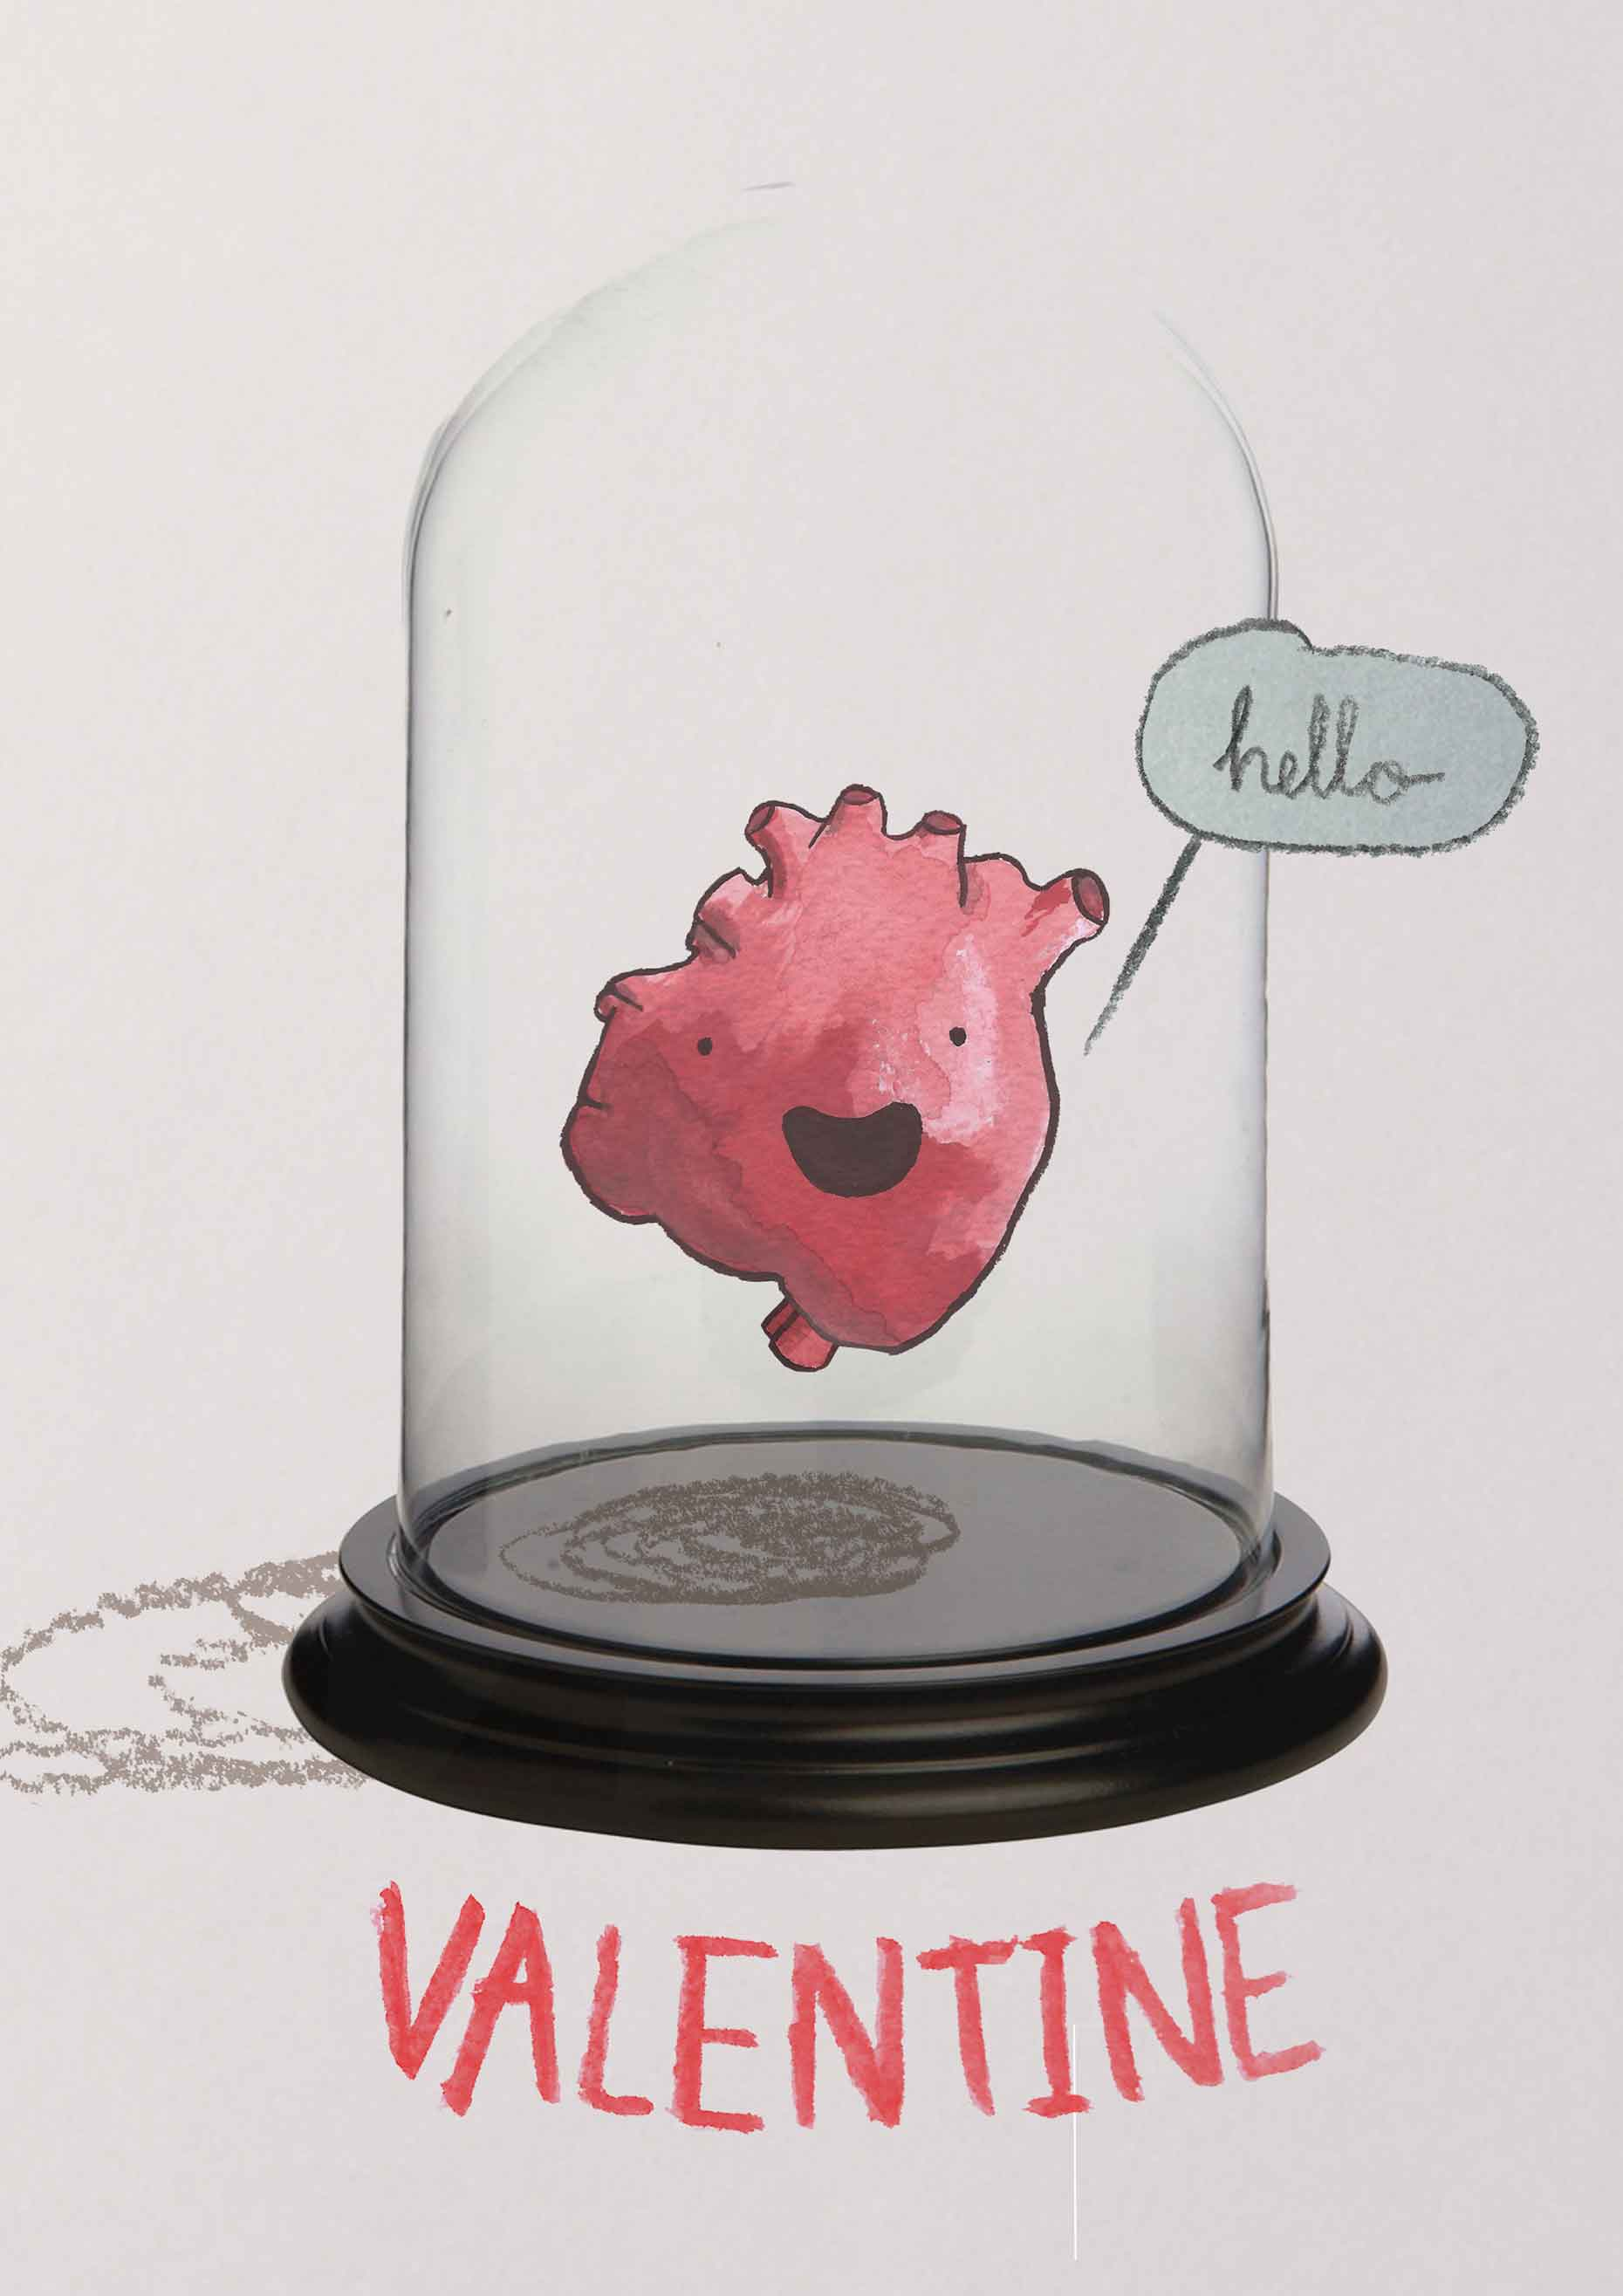 hellovalentine-front